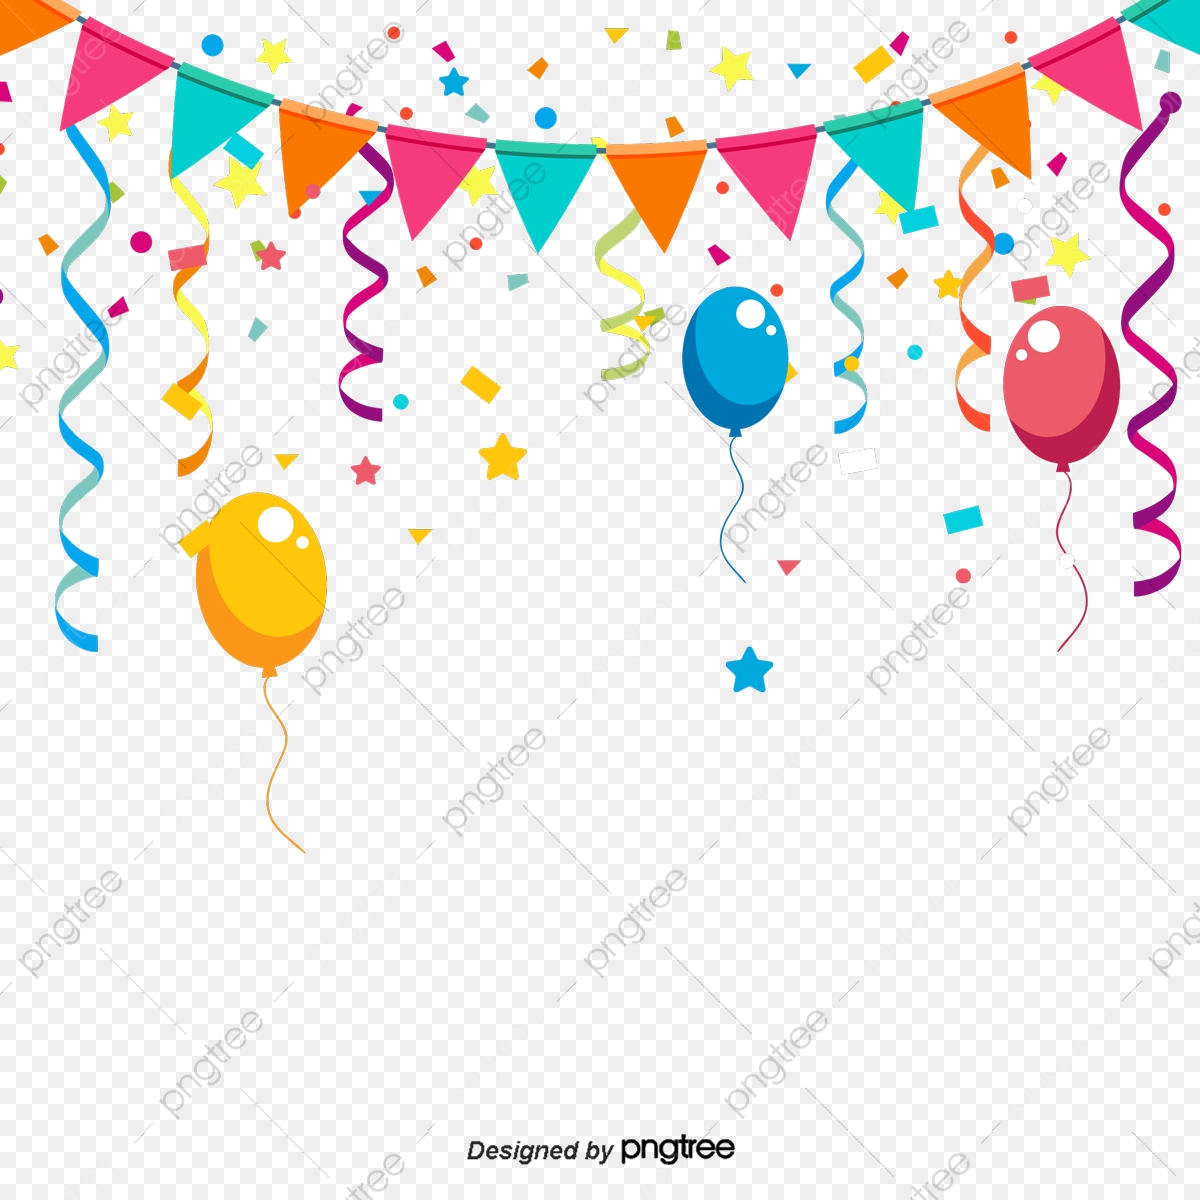 Party Favor Png - Colorful Birthday Party Decorations, Triangular Hanging Flag ...